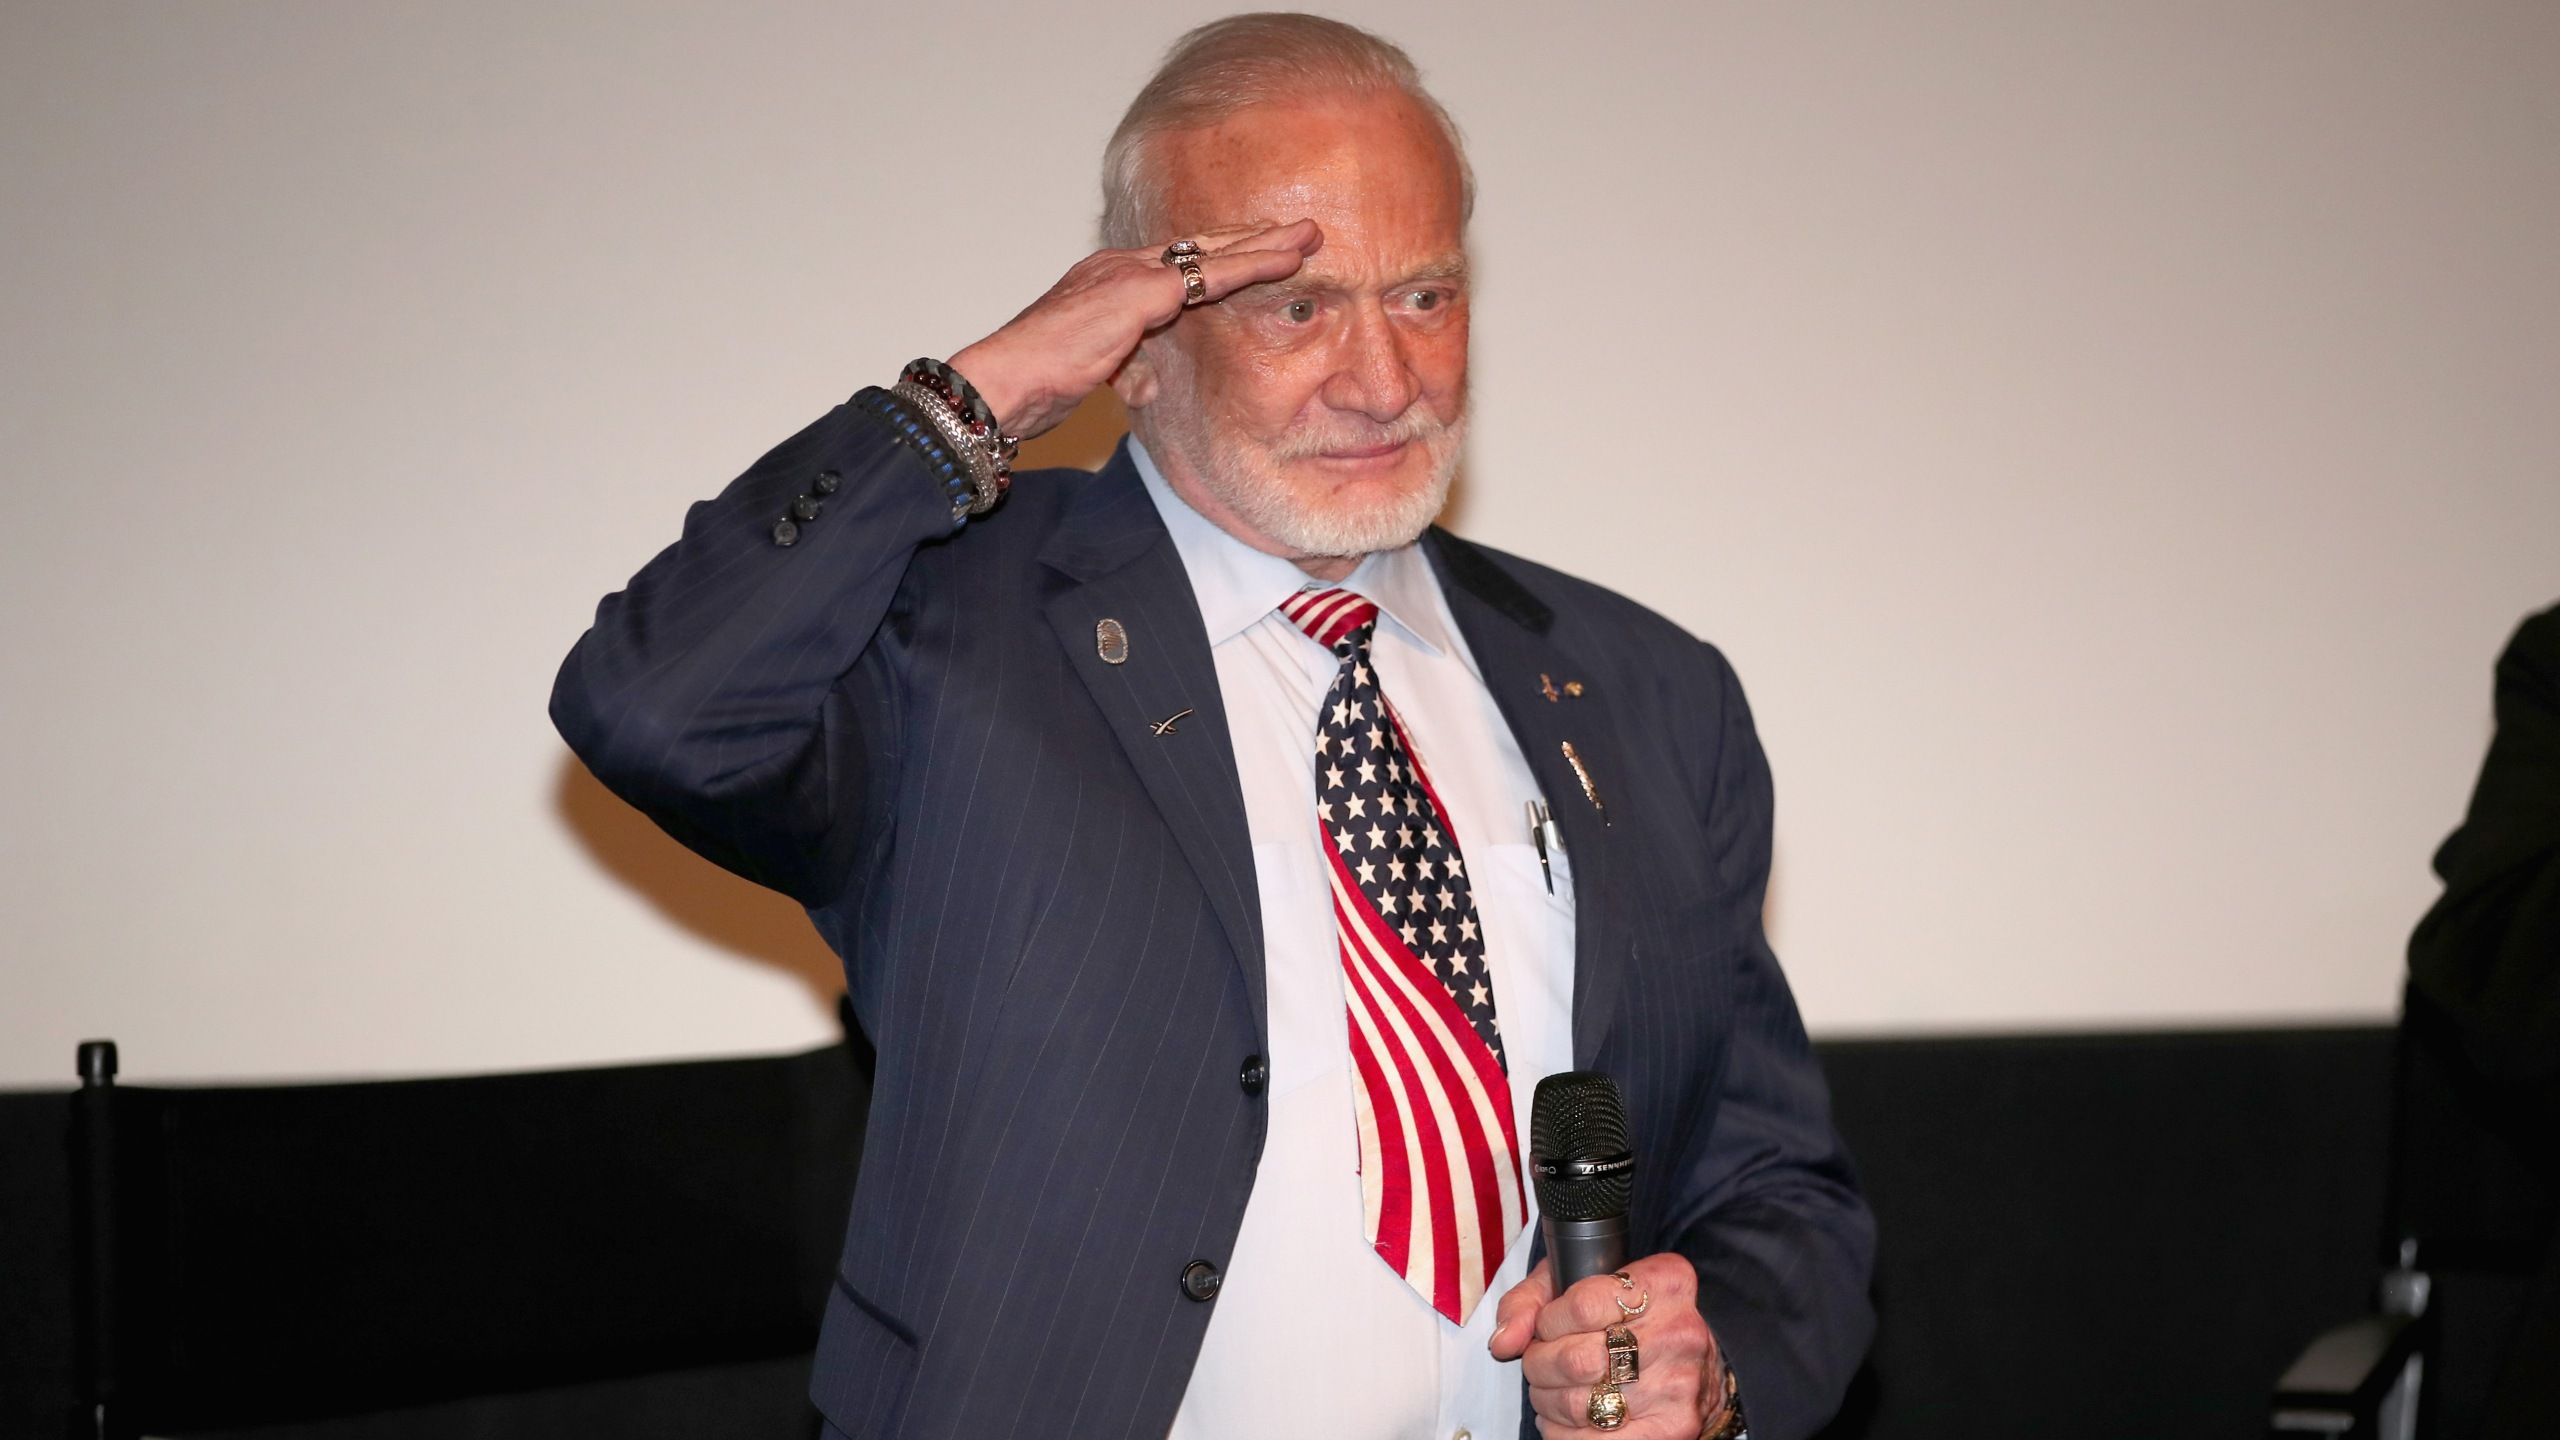 Astronaut Buzz Aldrin at the premiere of The Man Who Unlocked The Universe on June 21, 2018 in West Hollywood, California. (Credit: Christopher Polk/Getty Images)